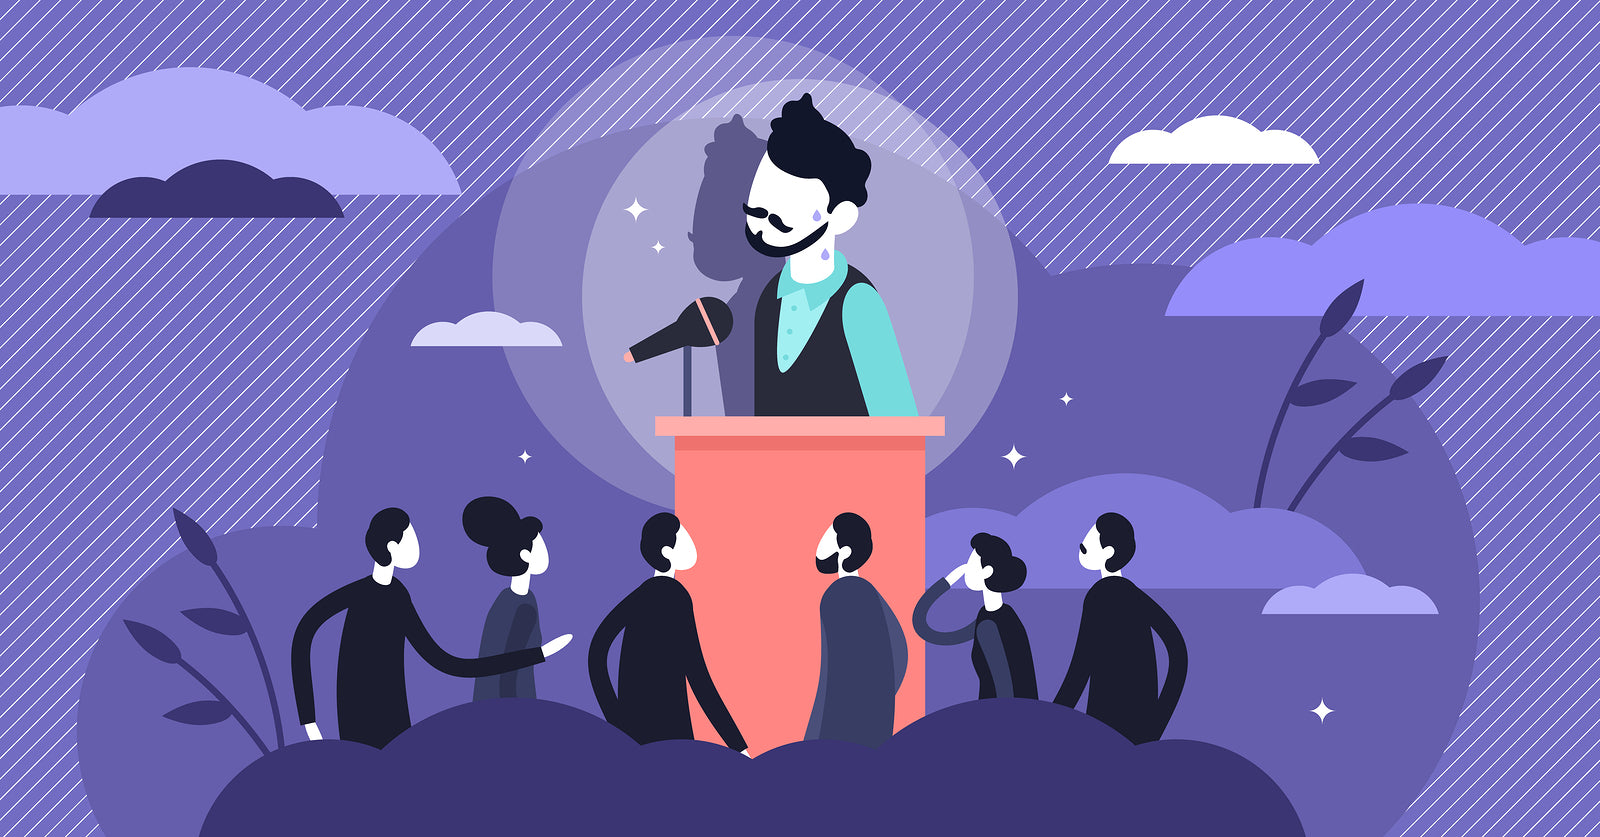 A cartoon of a man public speaking being watched by a crowd causing performance anxiety